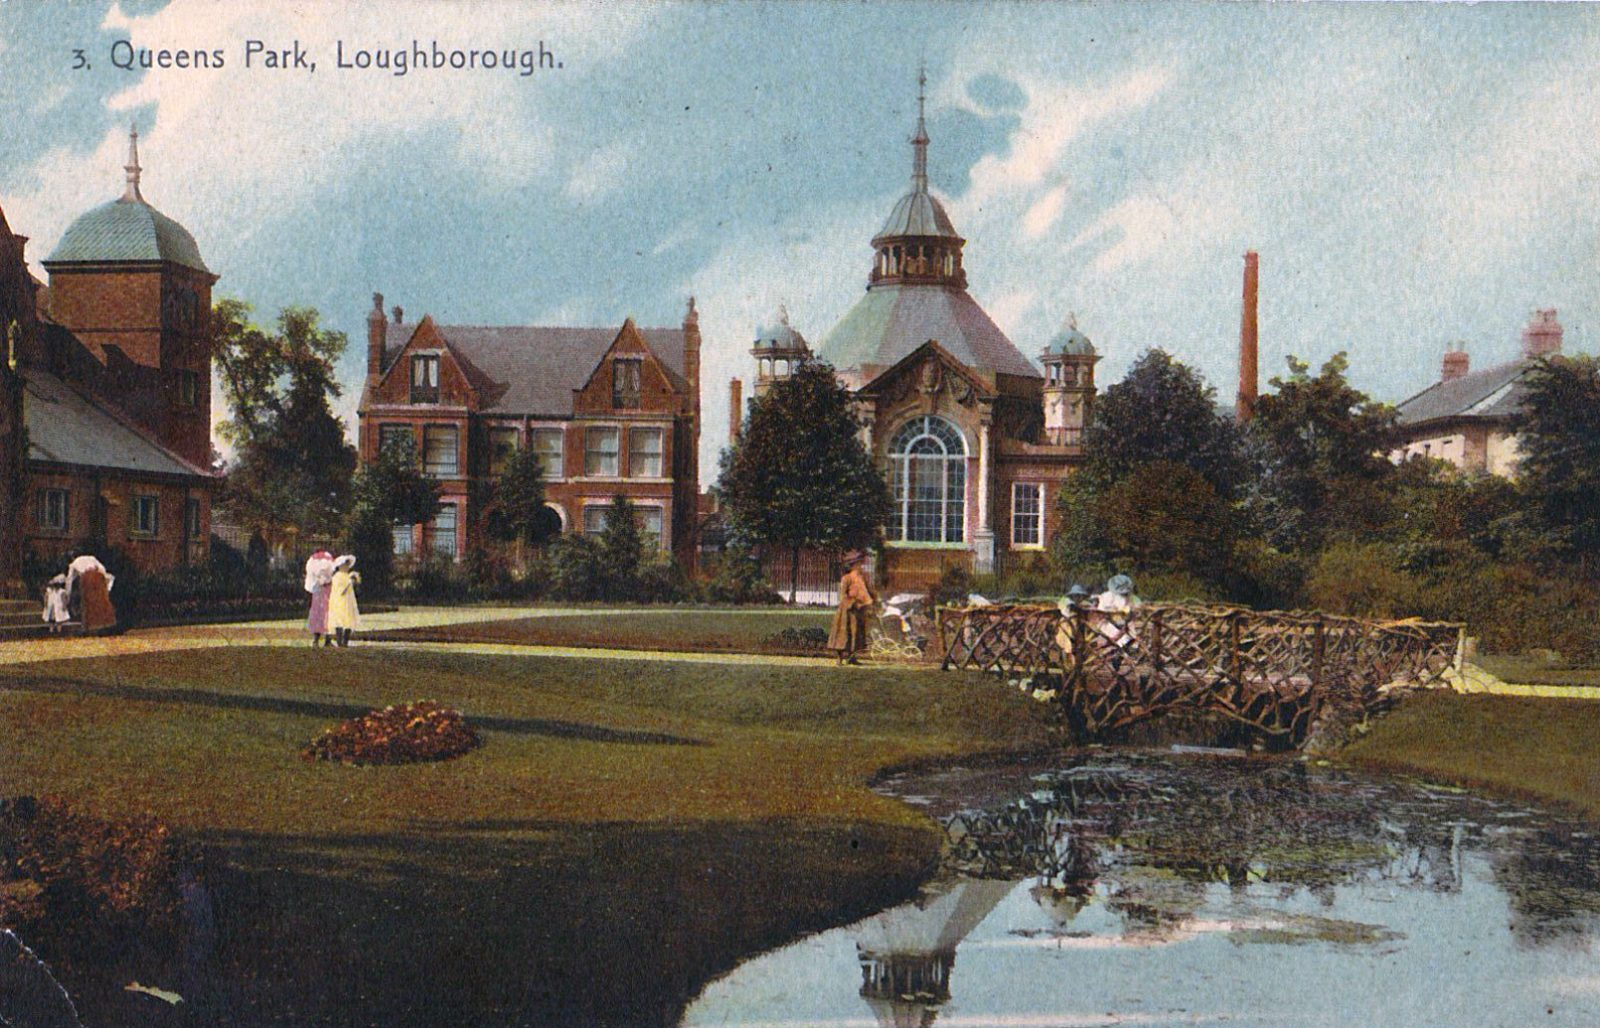 Queens Park, Loughborough. 1901-1920: The Library and bath house with pond and rustic bridge in foreground. (File:1450)